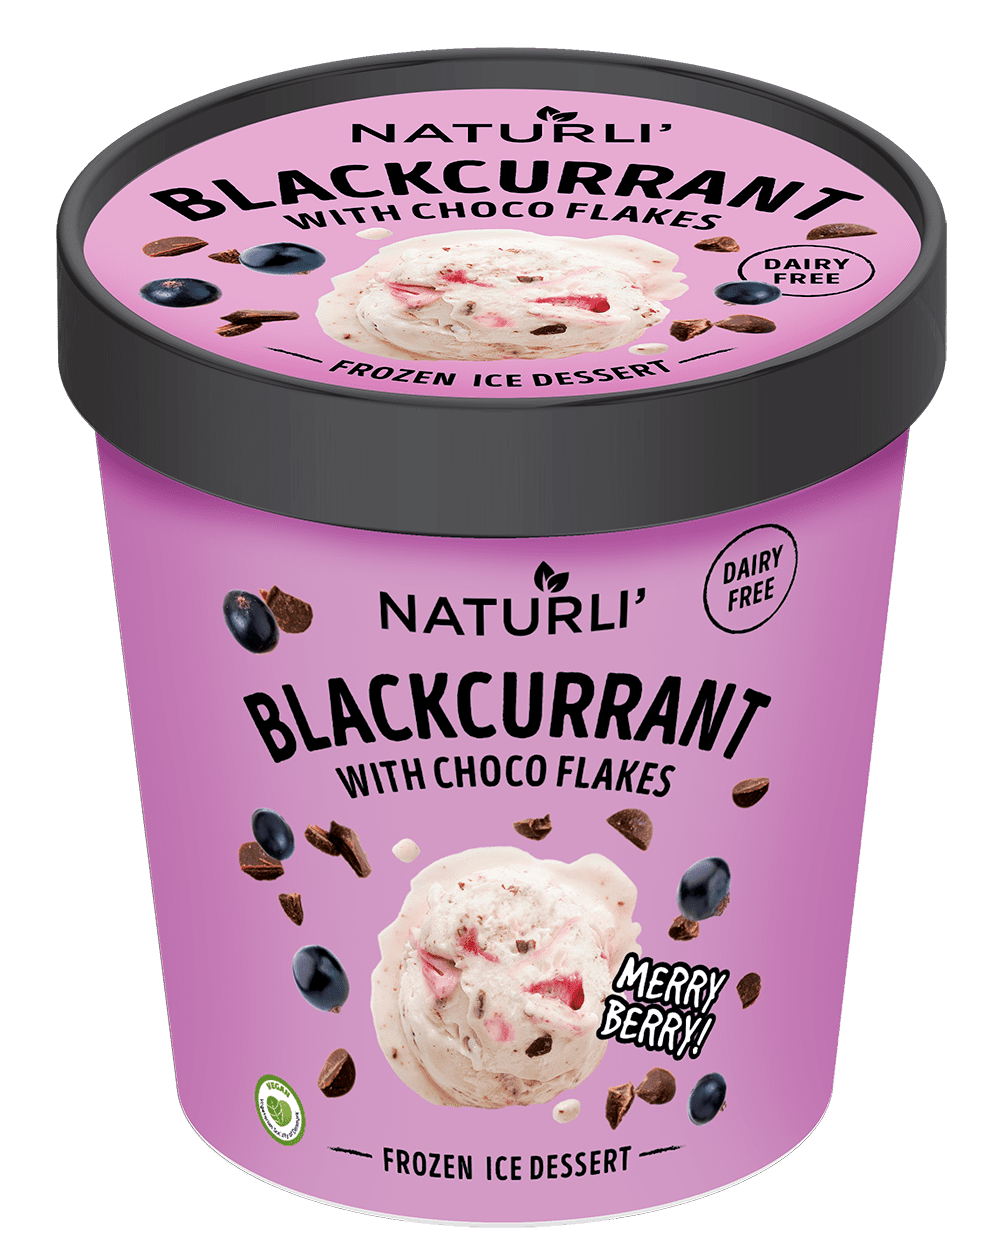 Blackcurrant with Choco Flakes